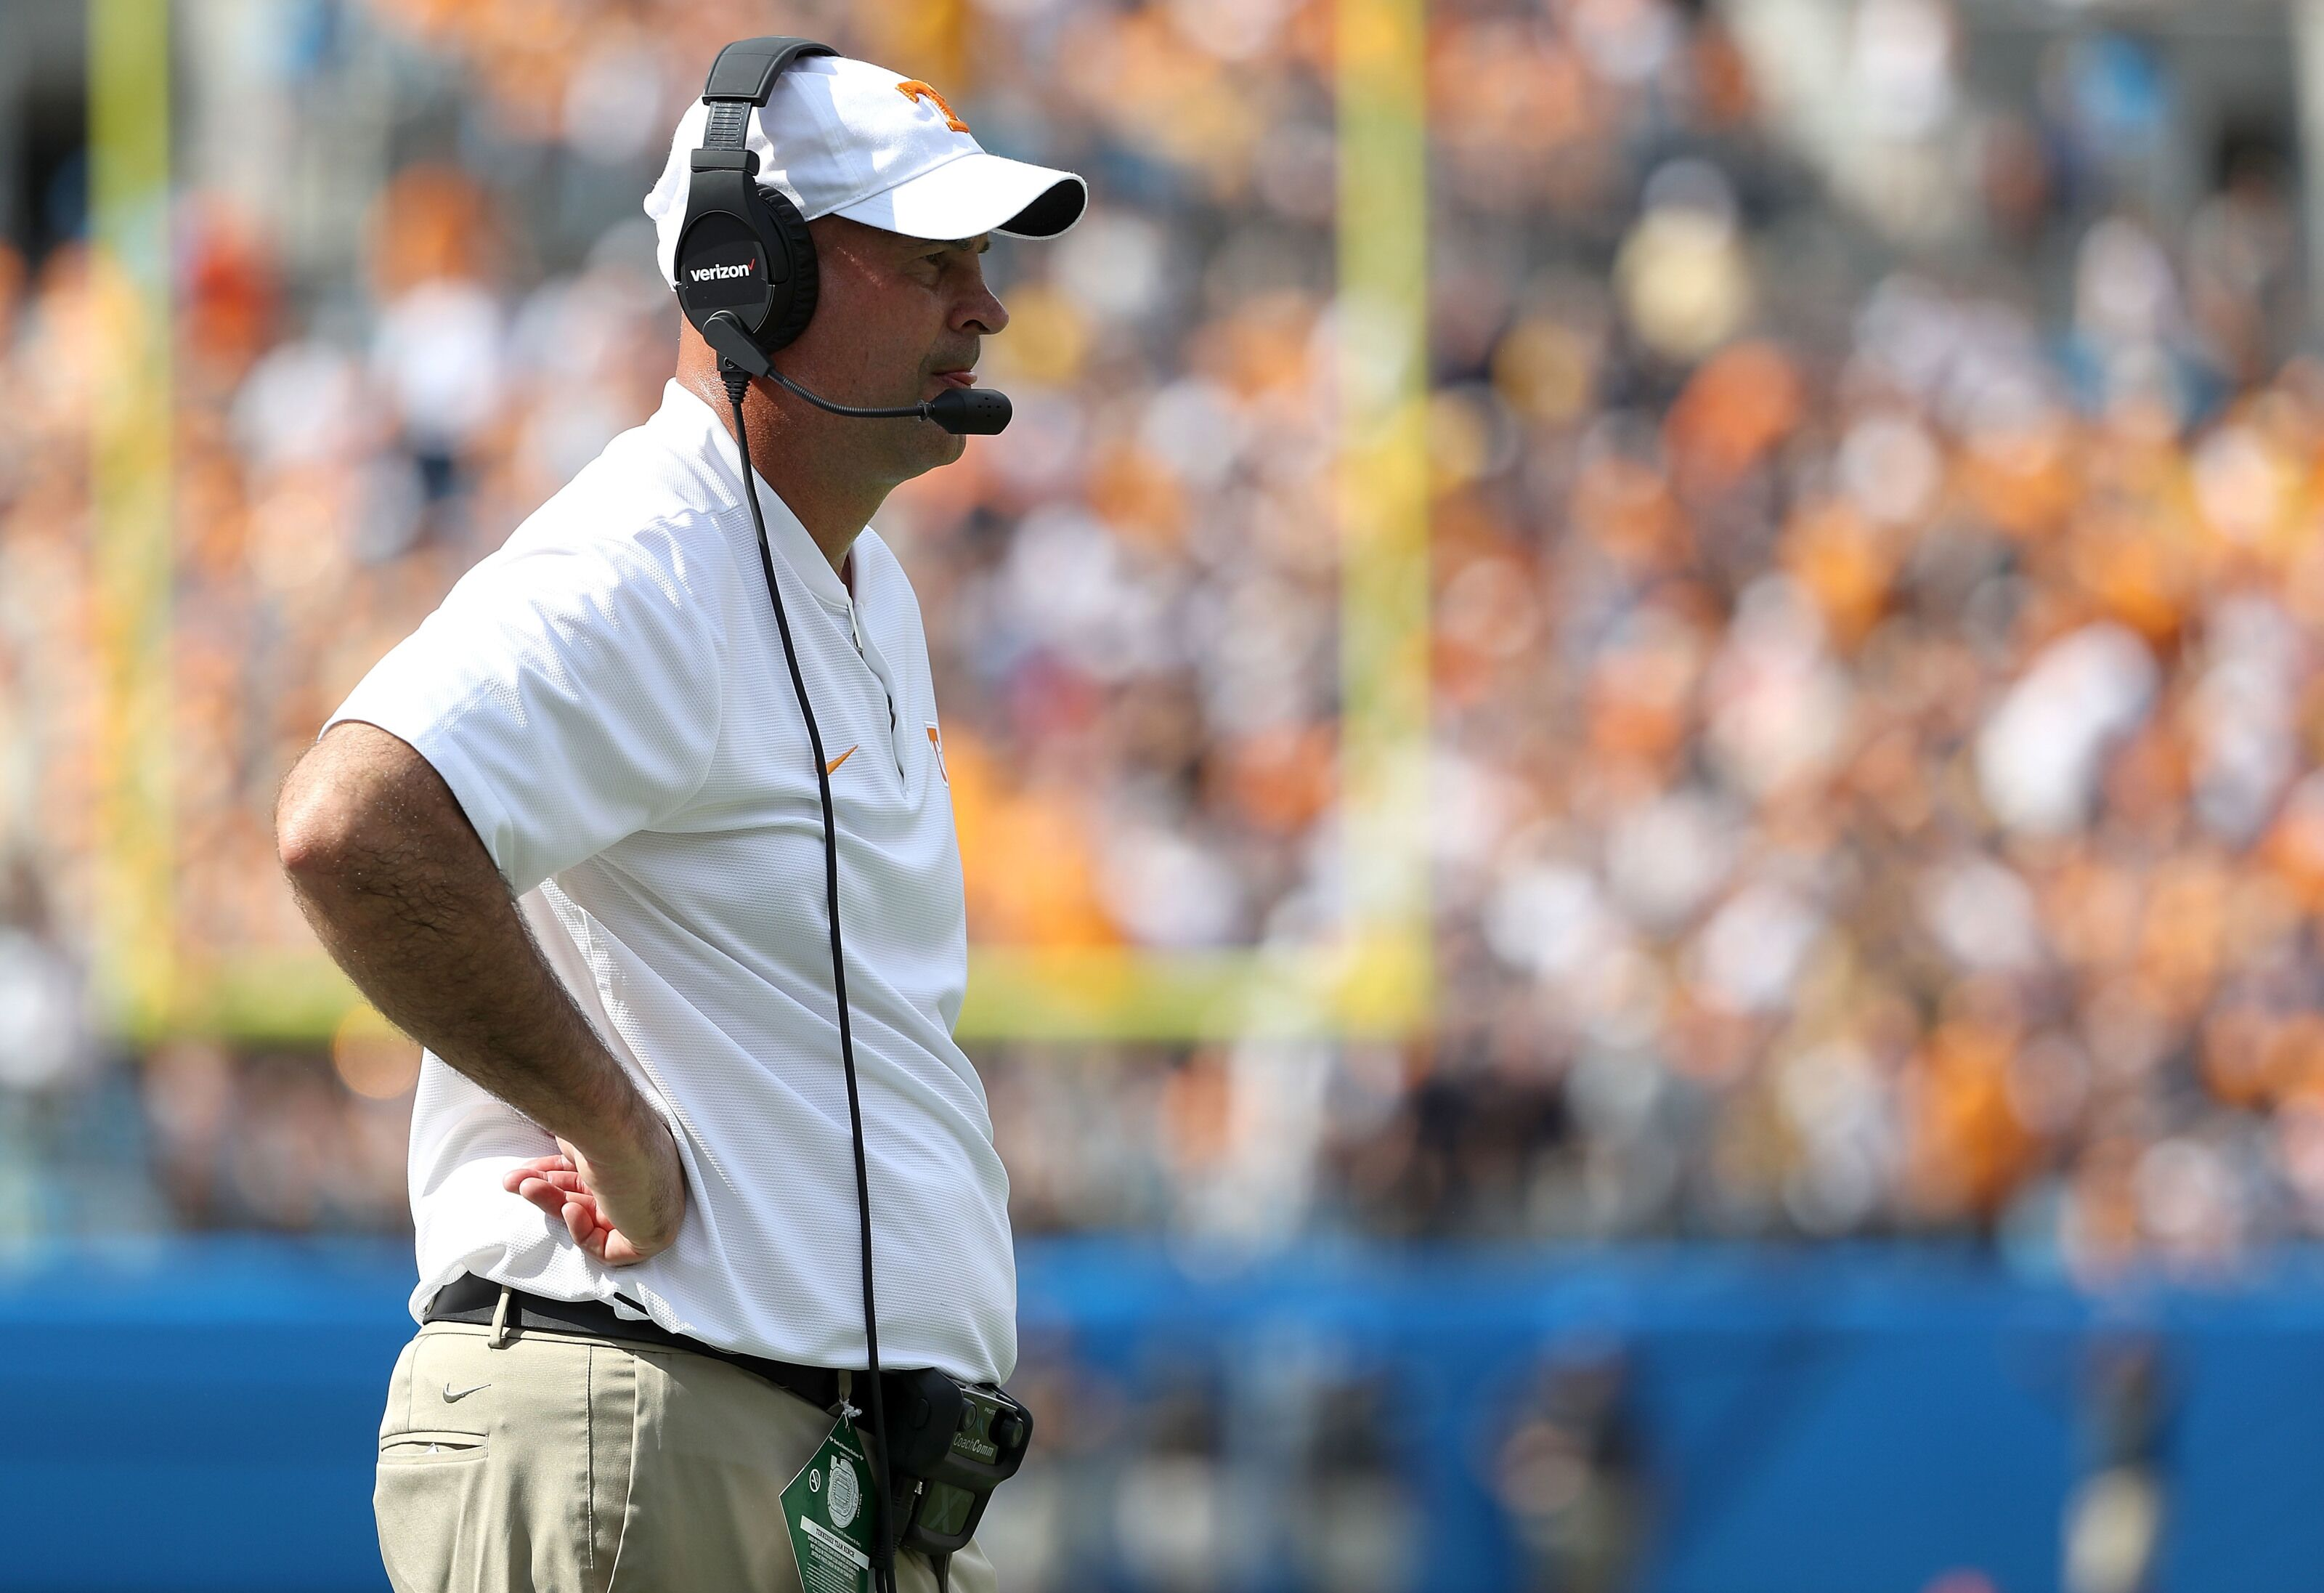 Tennessee football: Jeremy Pruitt's dishonesty on Vols players is disturbing